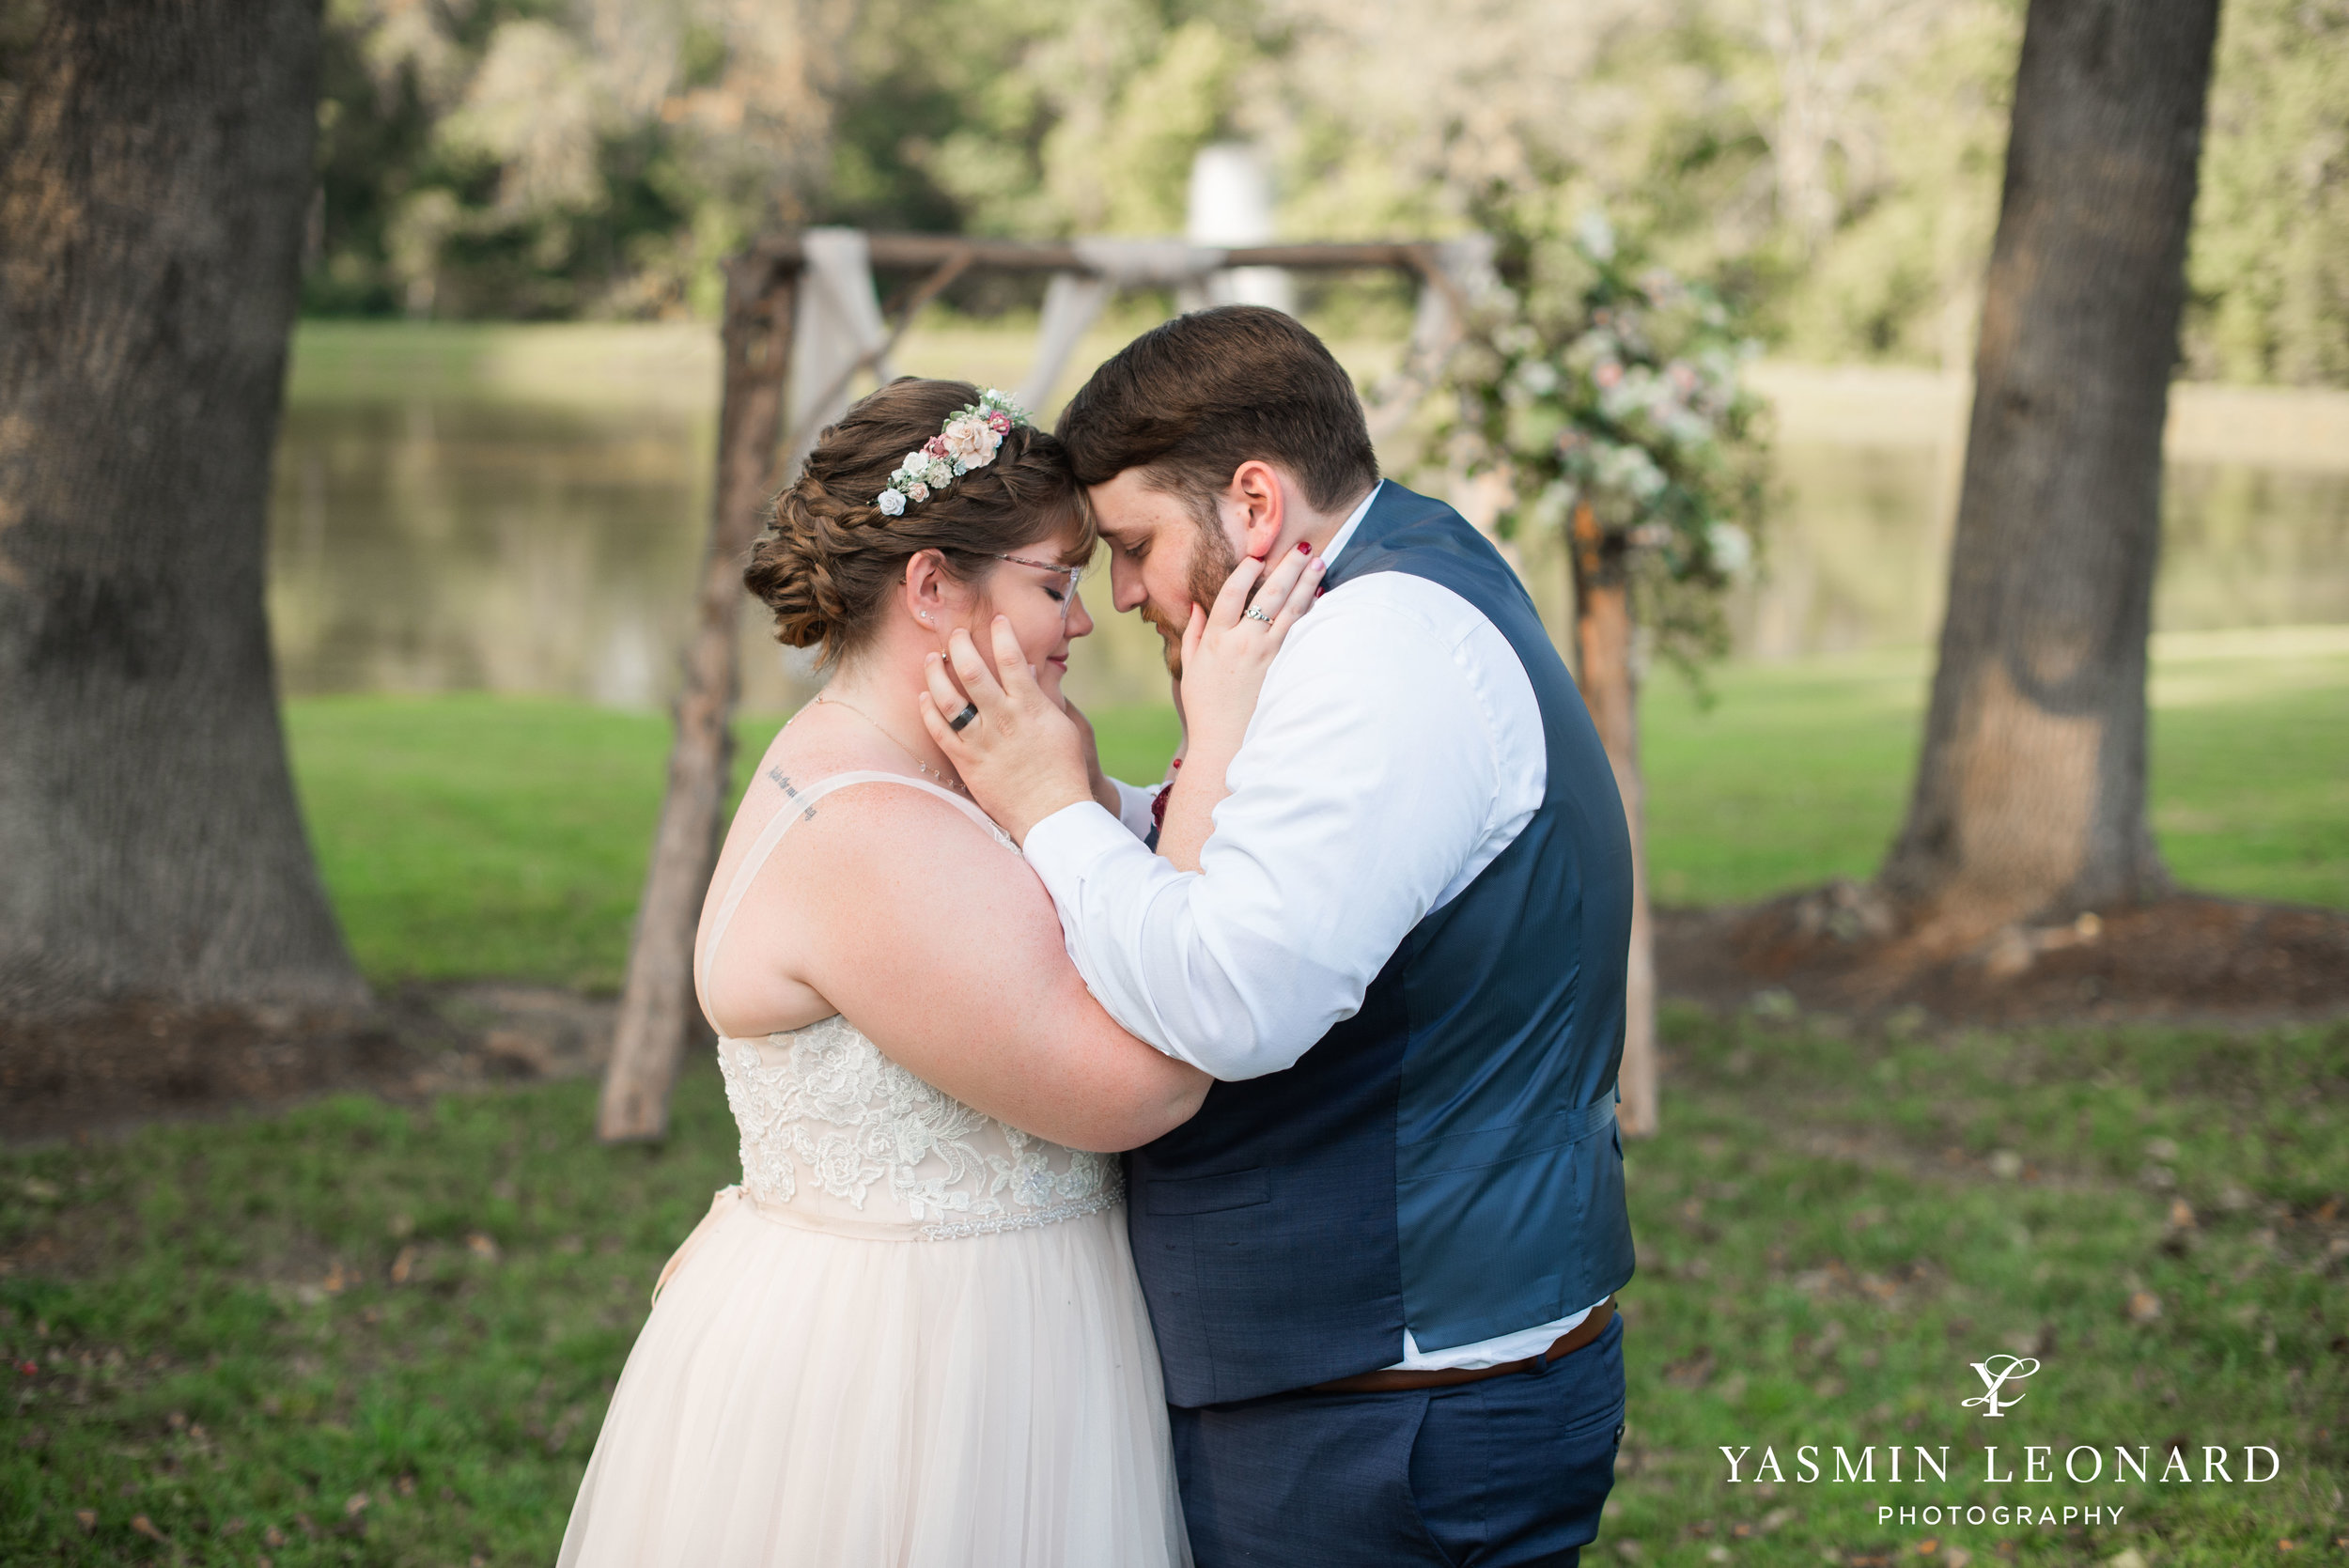 Hannah and David - l'abri at Linwood - NC Barn Weddings - Guys and Girls on Bride's Side - How to incorporate guys with bridesmaids - navy fall wedding - high point photographer - nc wedding venues - triad weddings-33.jpg